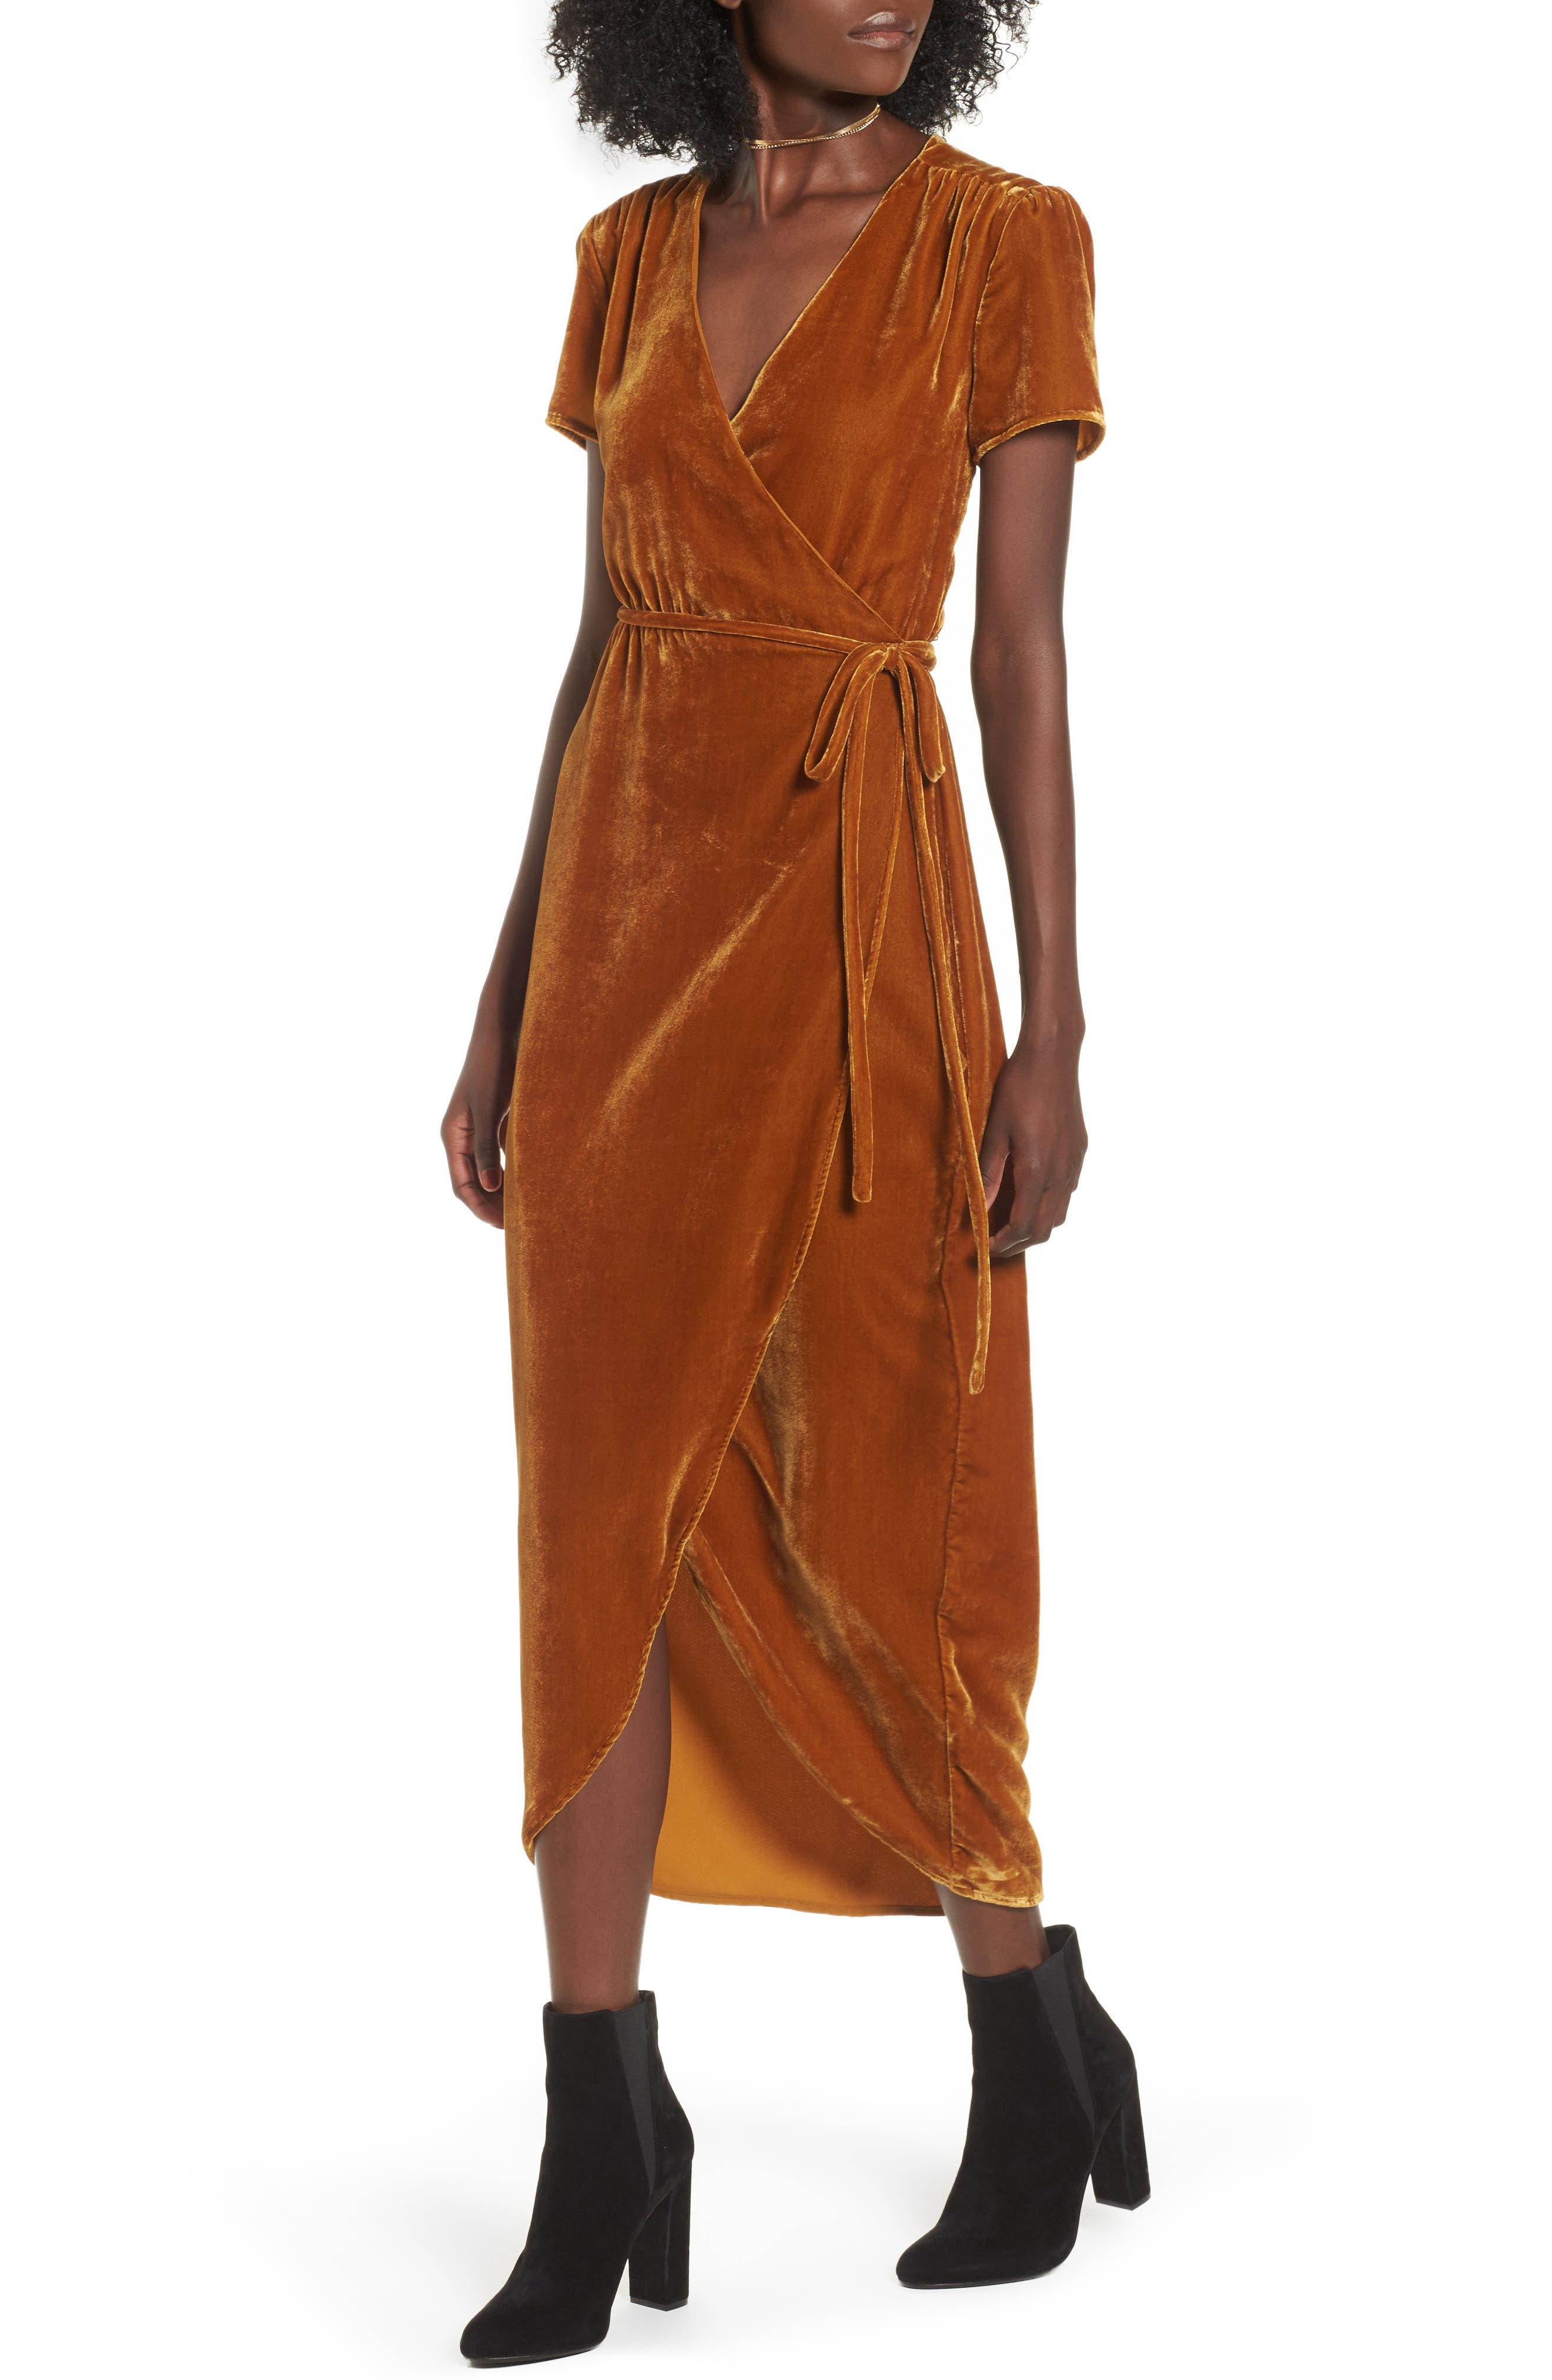 Next to You Velvet Wrap Dress,                         Main,                         color, Mustard